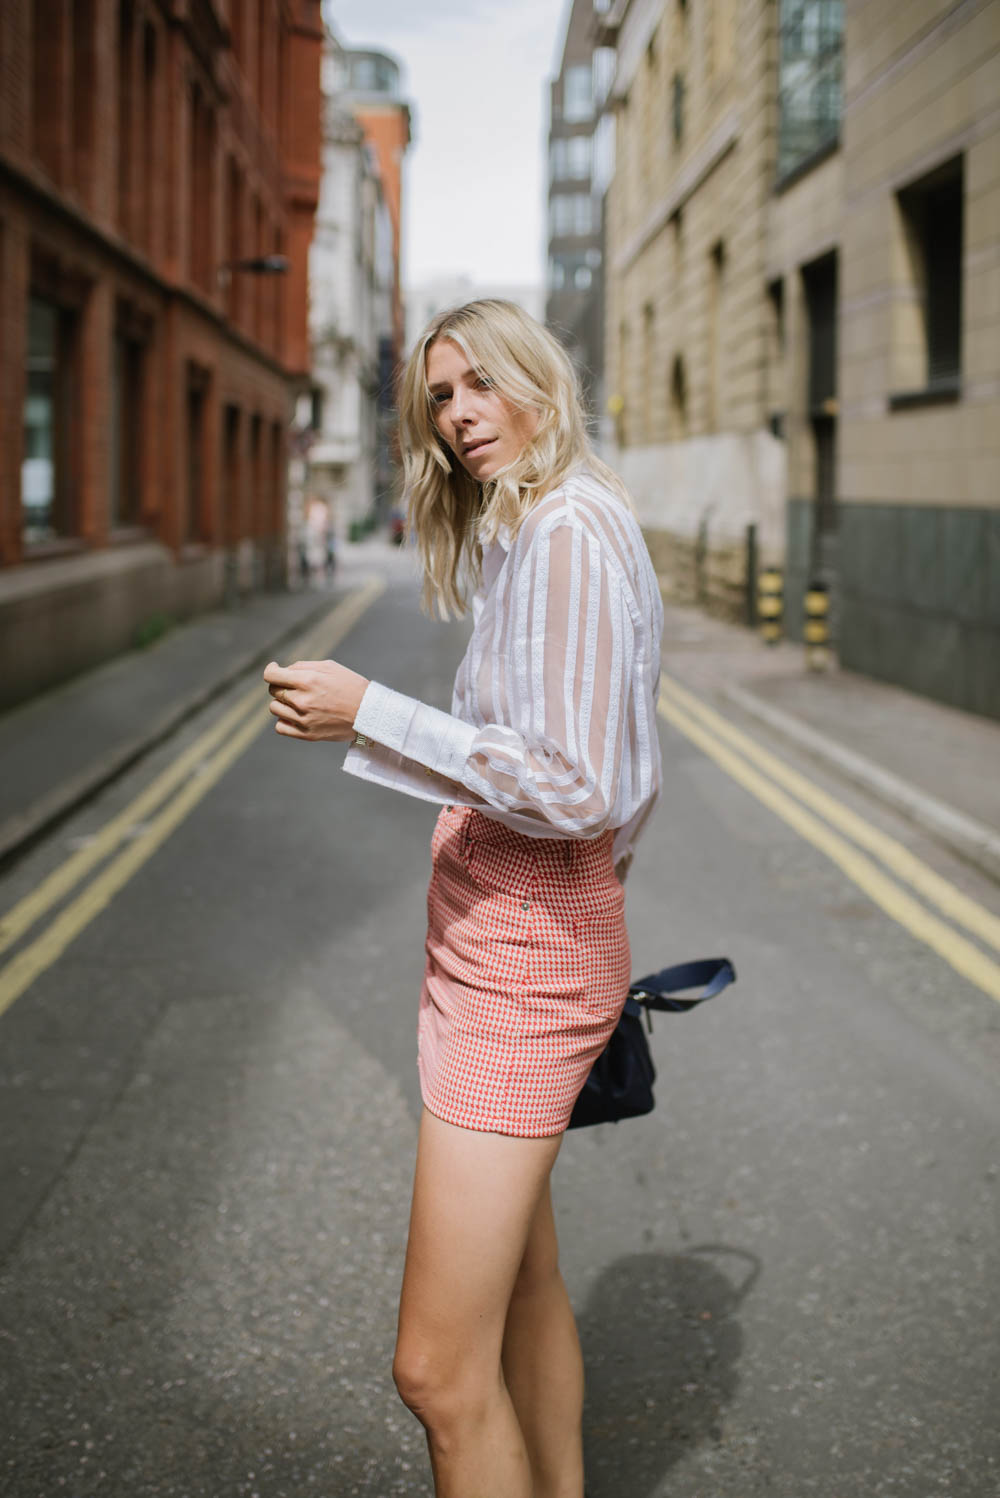 Red-Topshop-skirt-final-edits-8.jpg